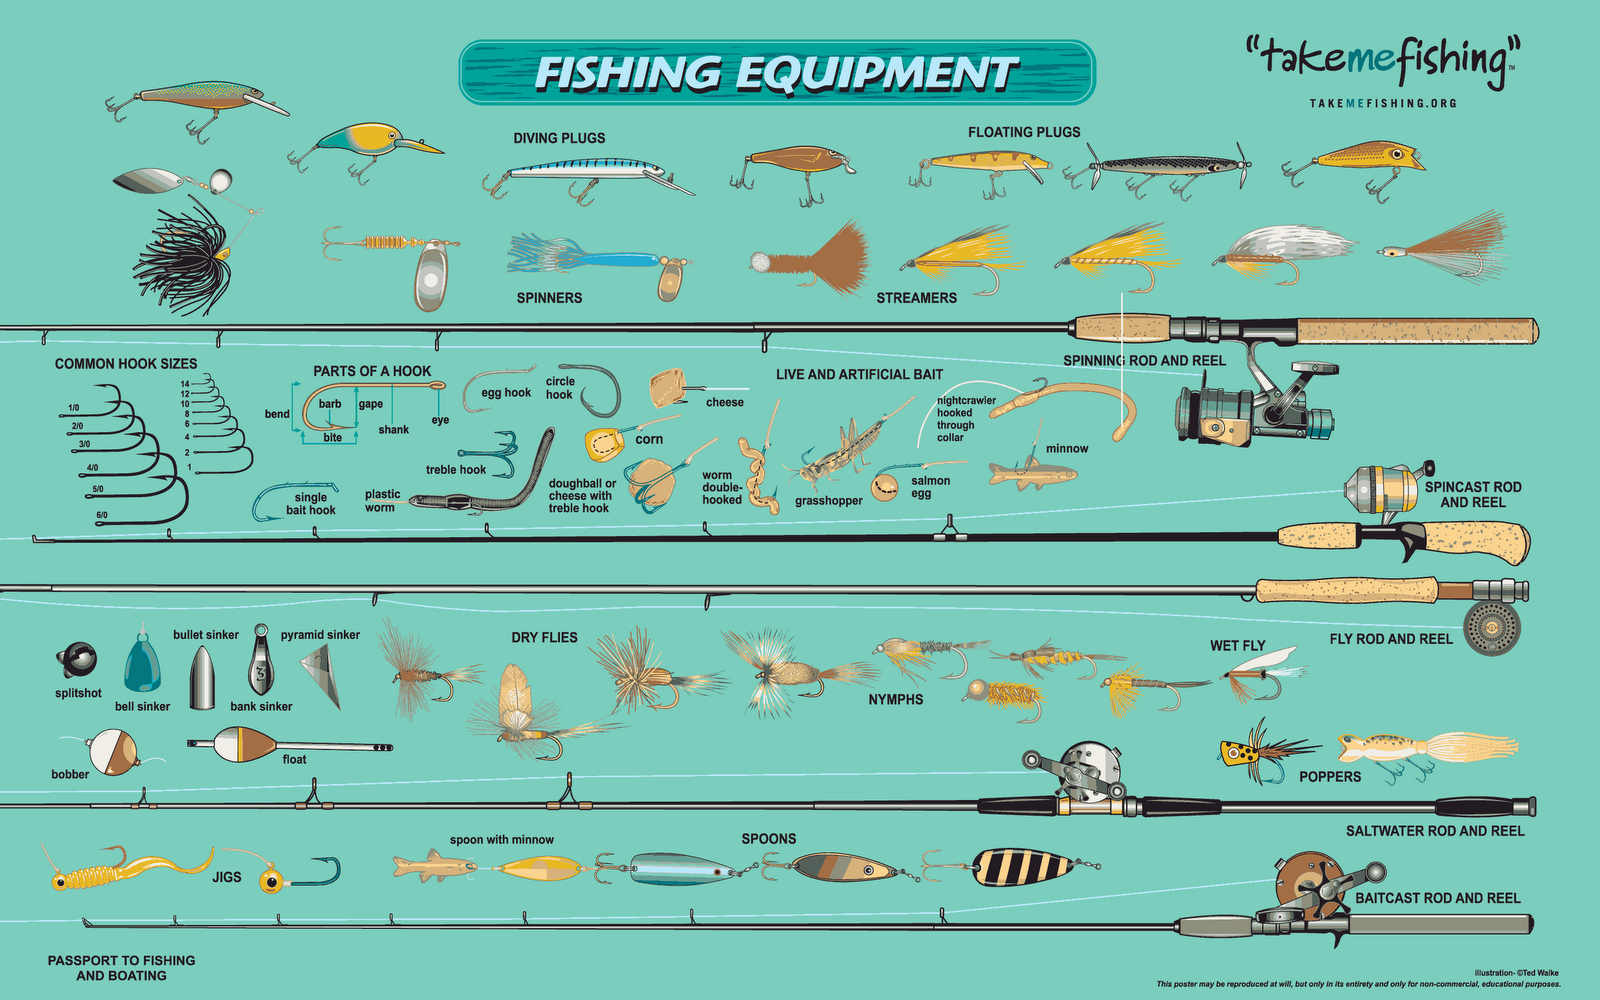 fishing-equipment-fishing-equipment-1600x1000.jpg